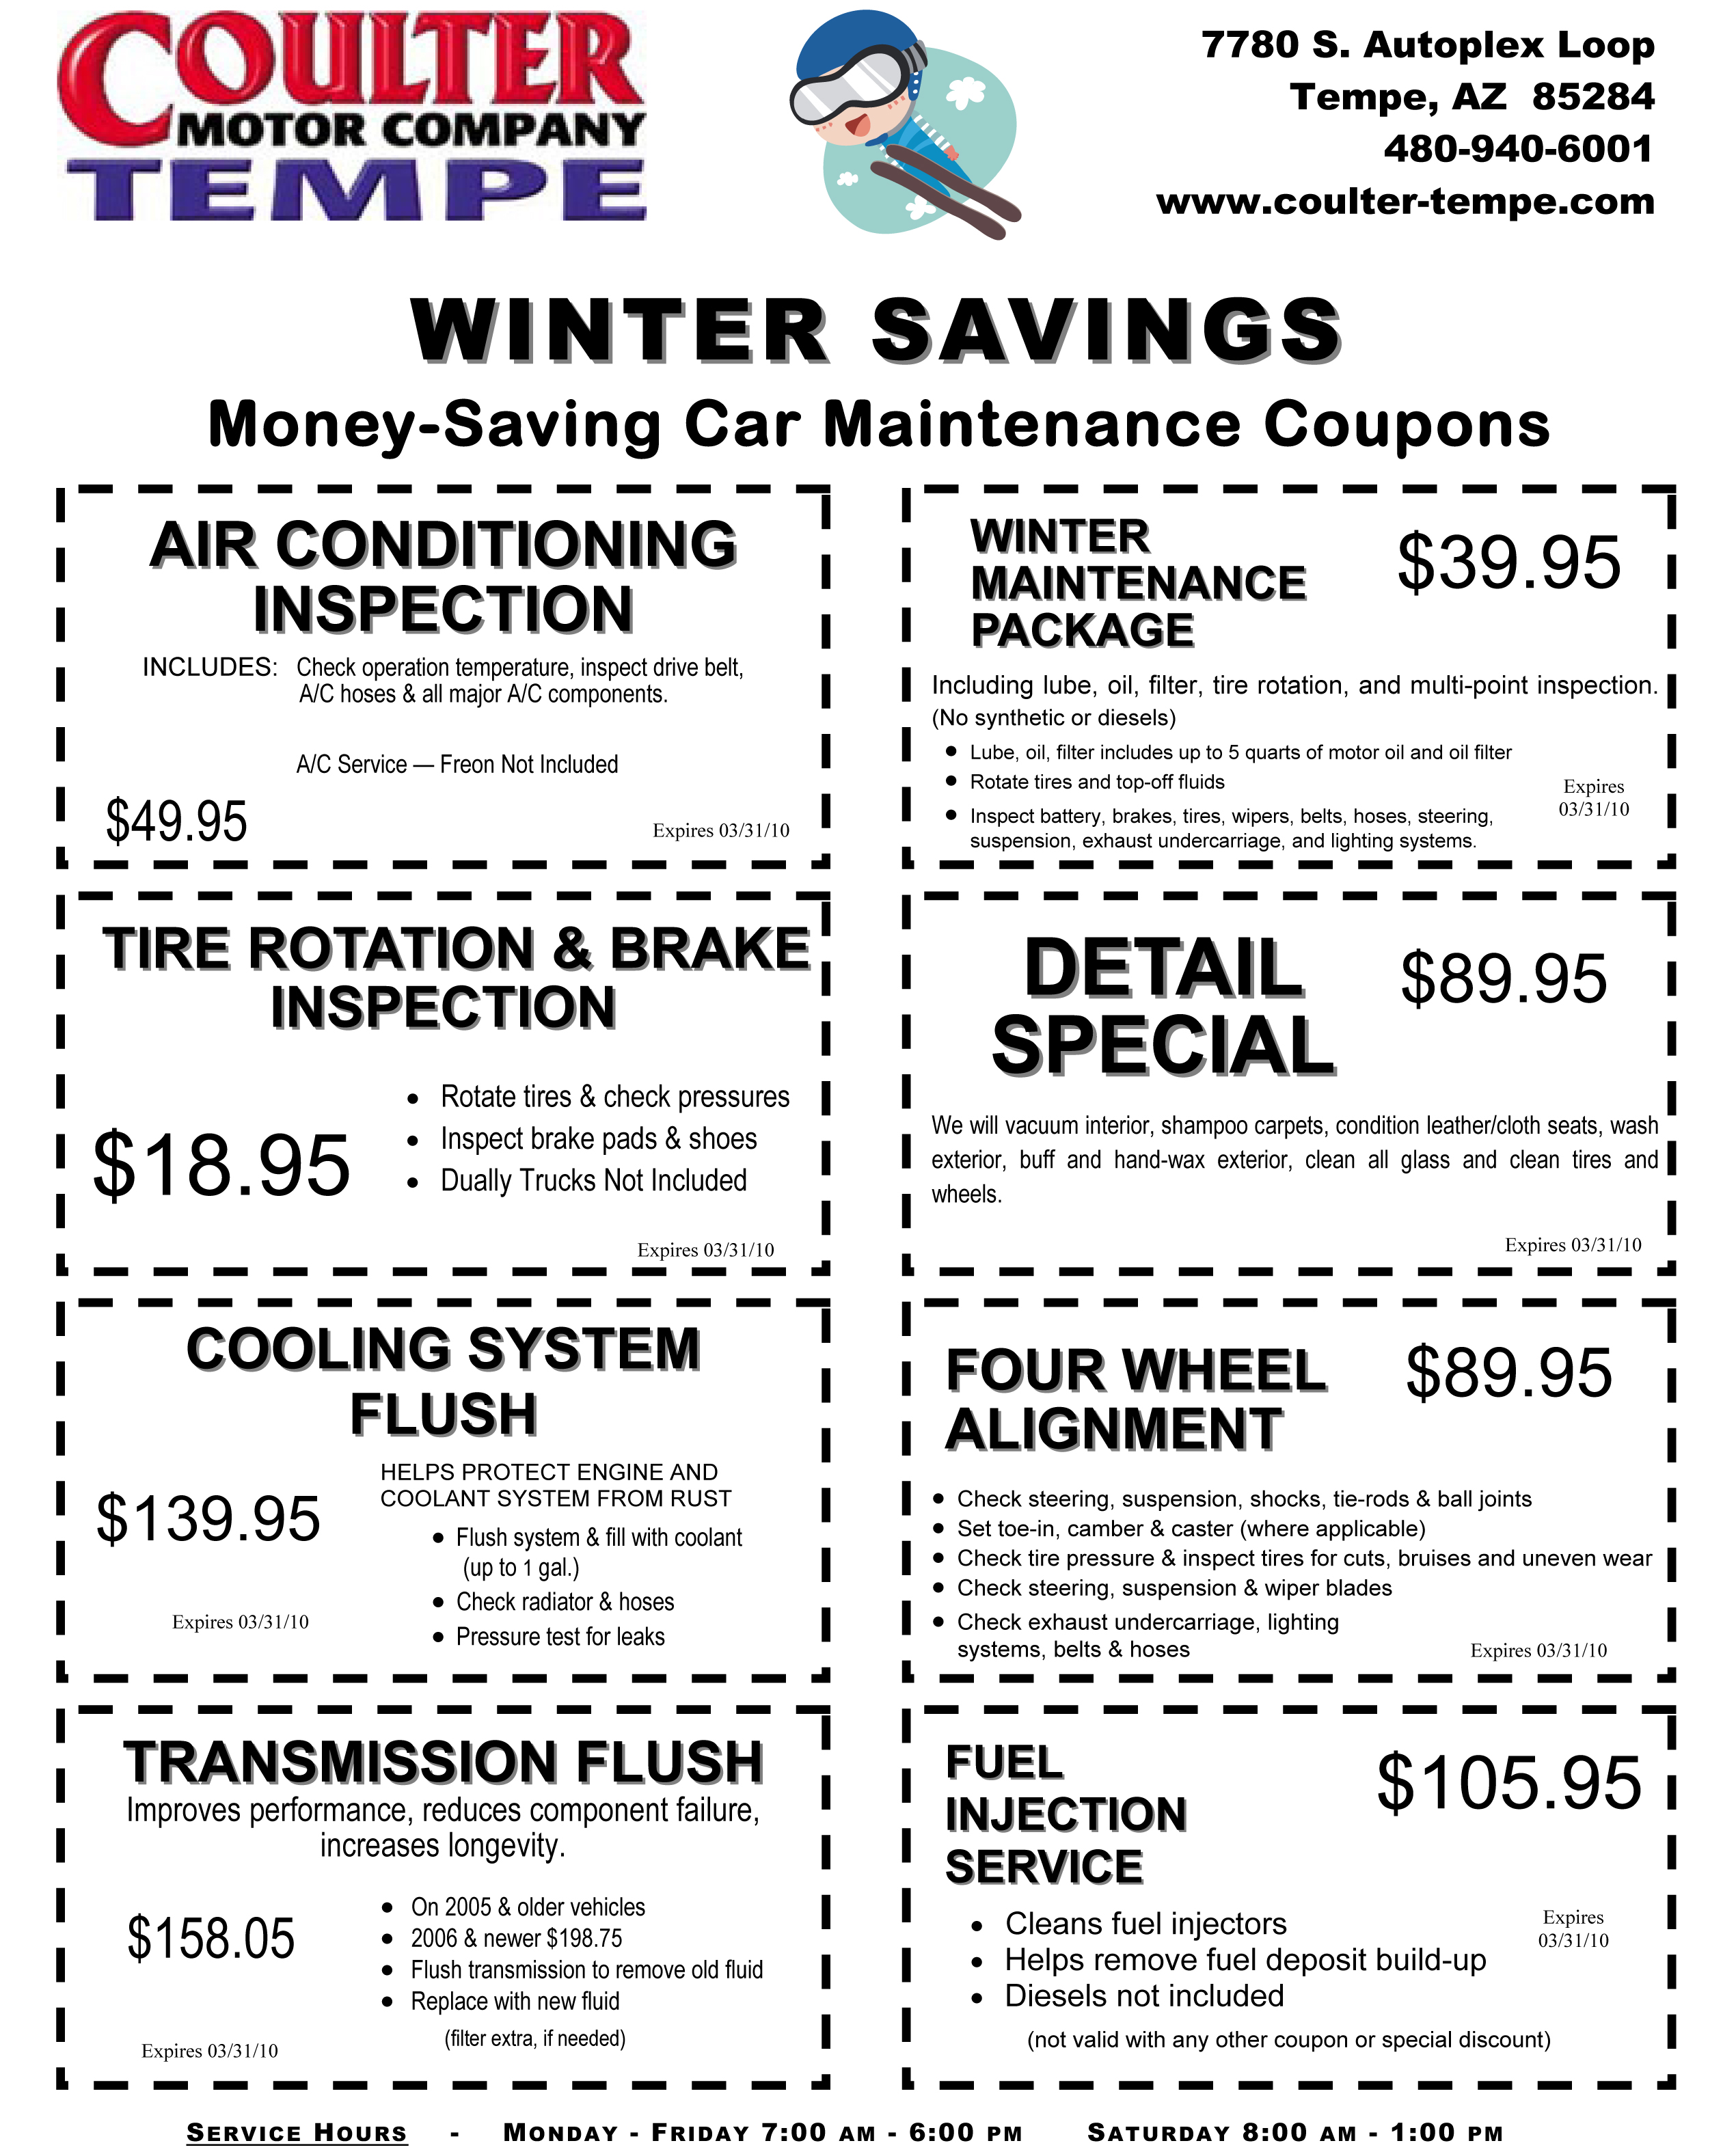 February service specials are here coulter motor company for Coulter motor company tempe